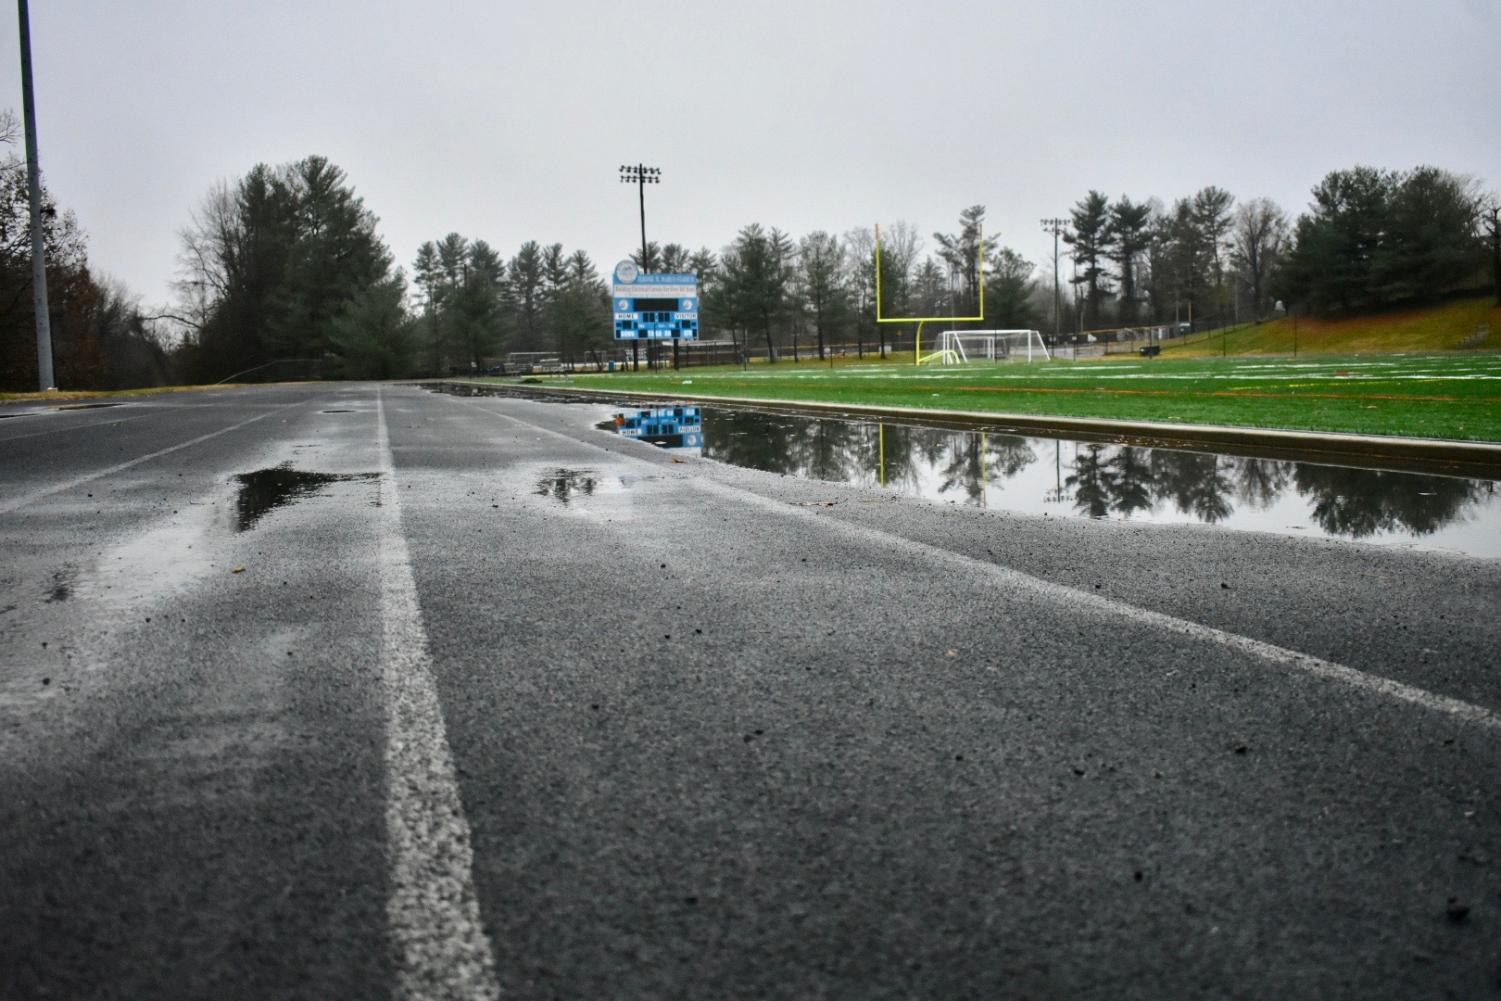 The Whitman track will be repaved this week and resurfaced over the summer. The repaving is to prevent the pooling of water on the track that has occurred since the construction of the new turf field.